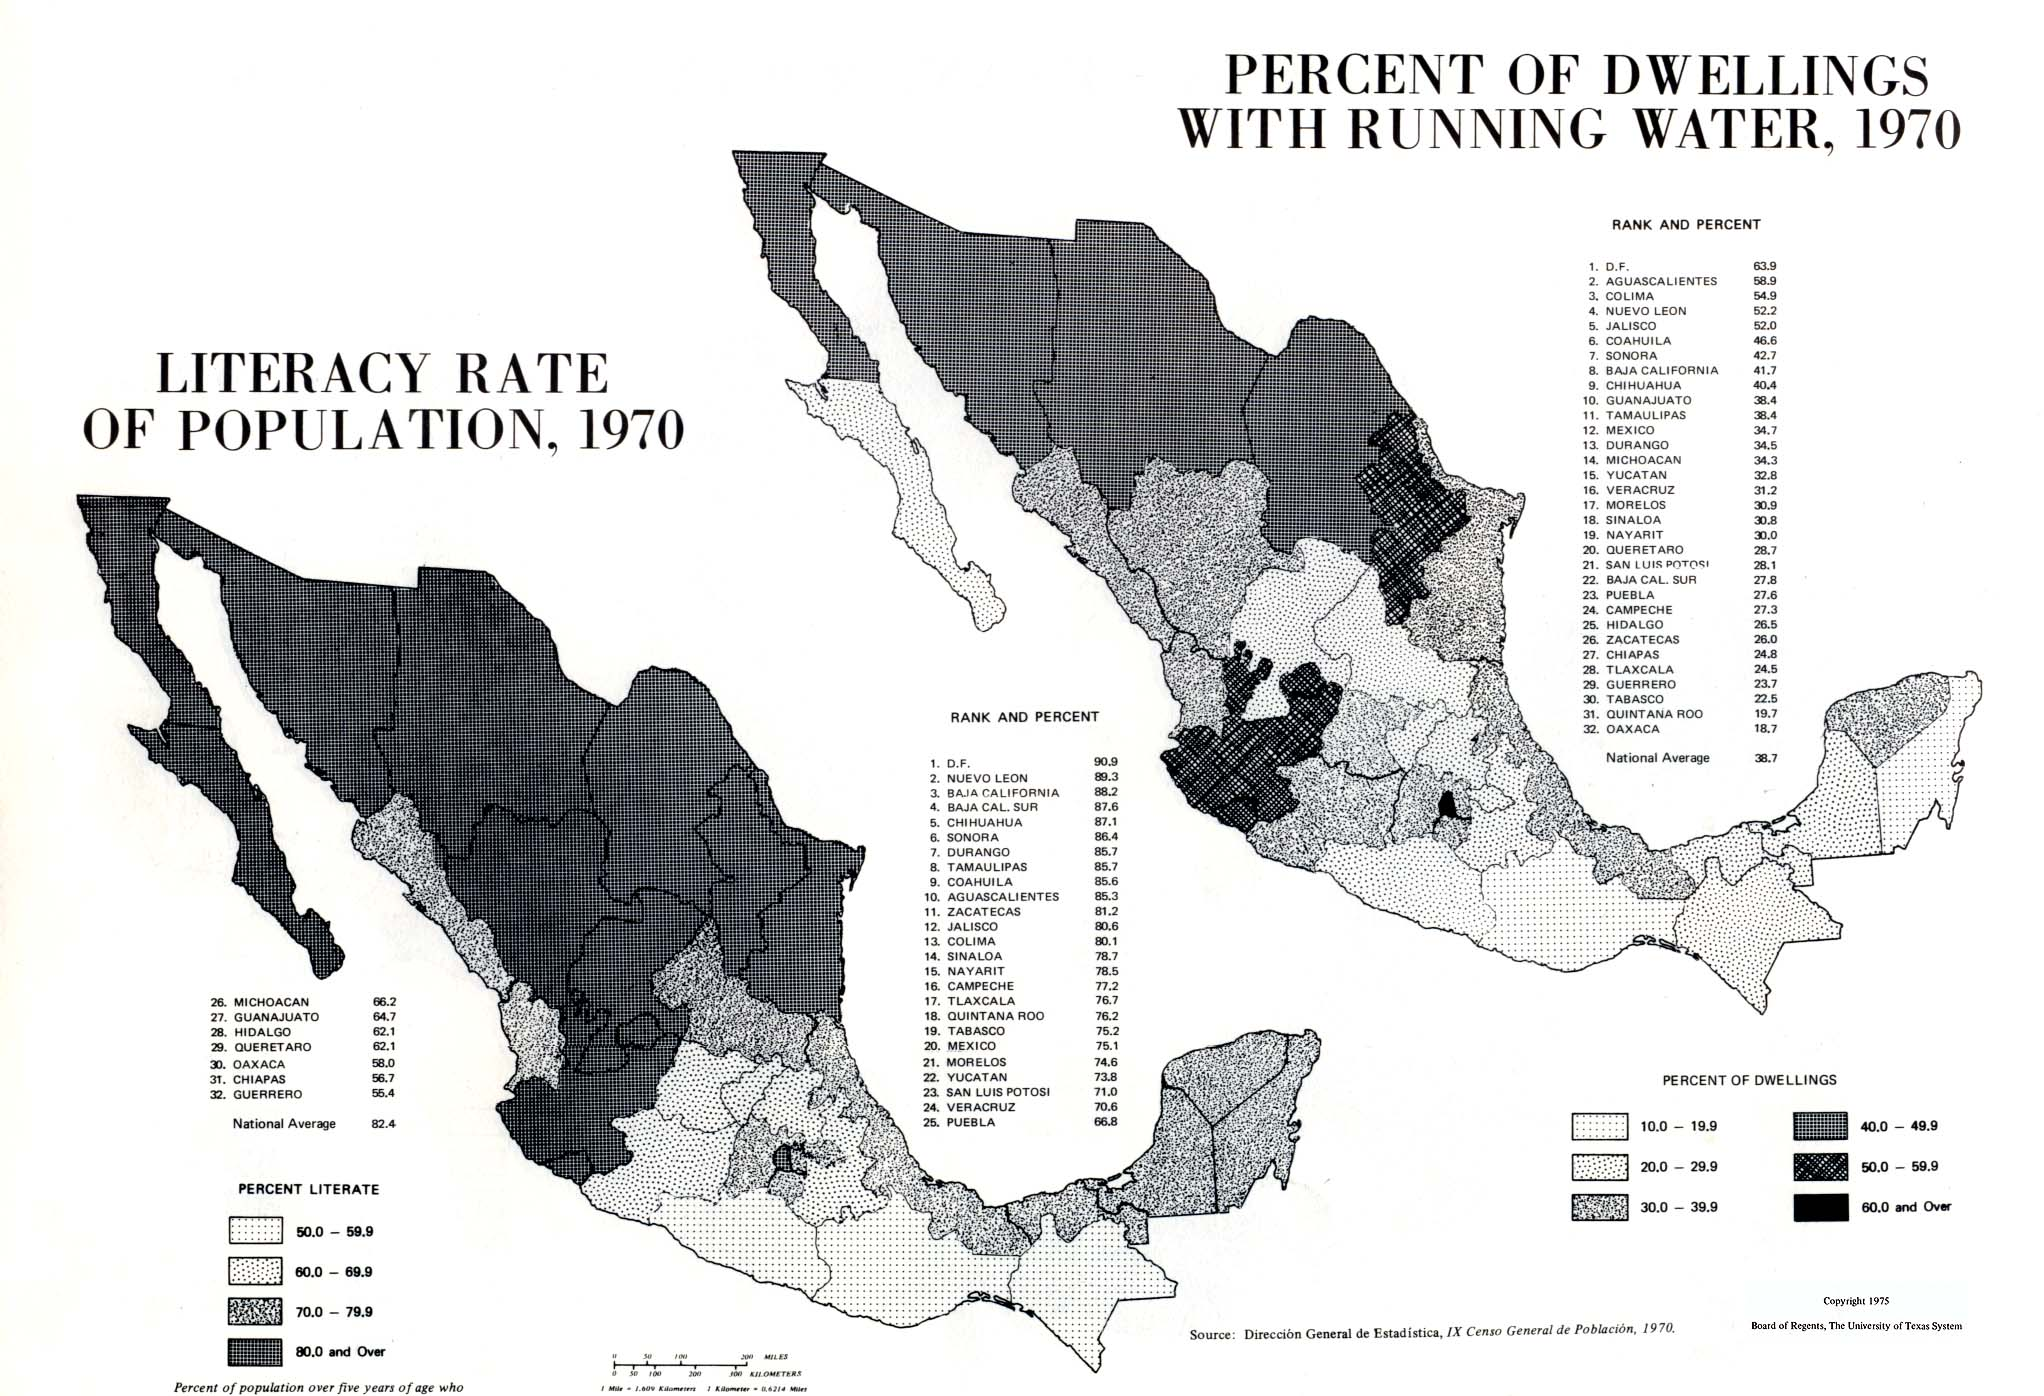 Map of Literacy Rate of Population and Percent of Dwellings with Running Water, Mexico